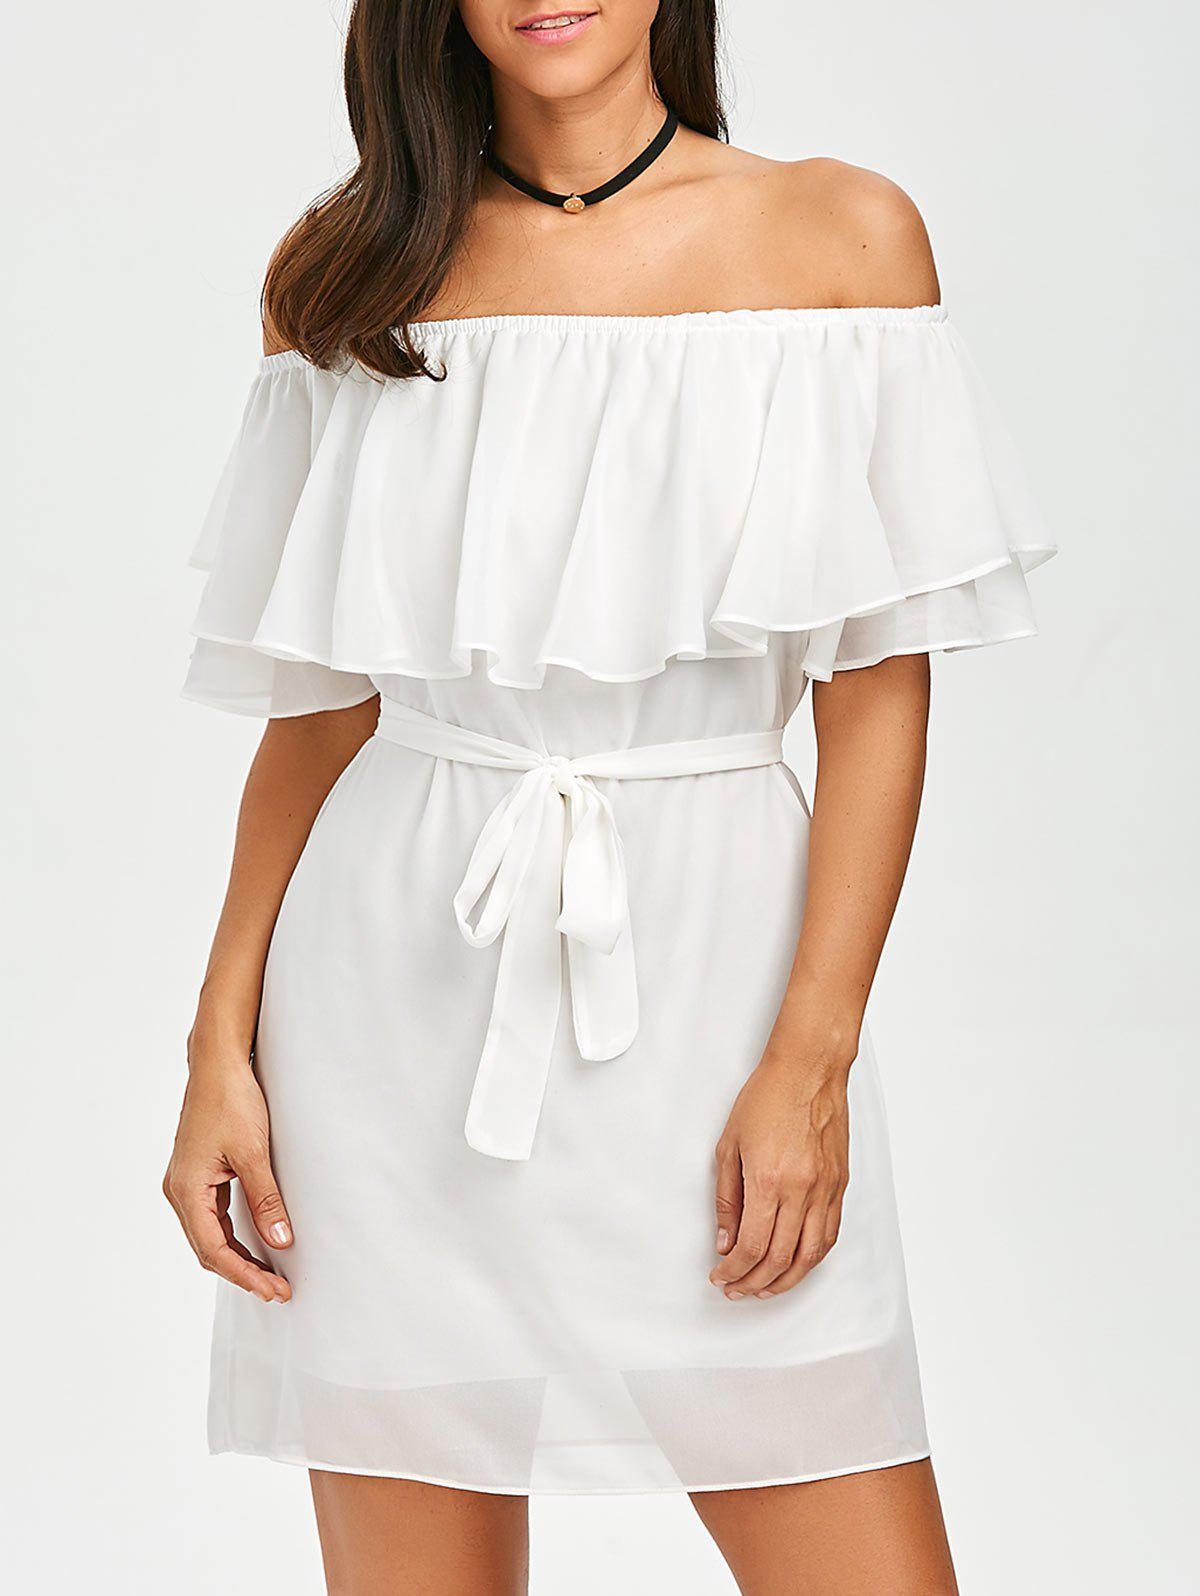 Flounce Off The Shoulder Belted Dress - Blanc S